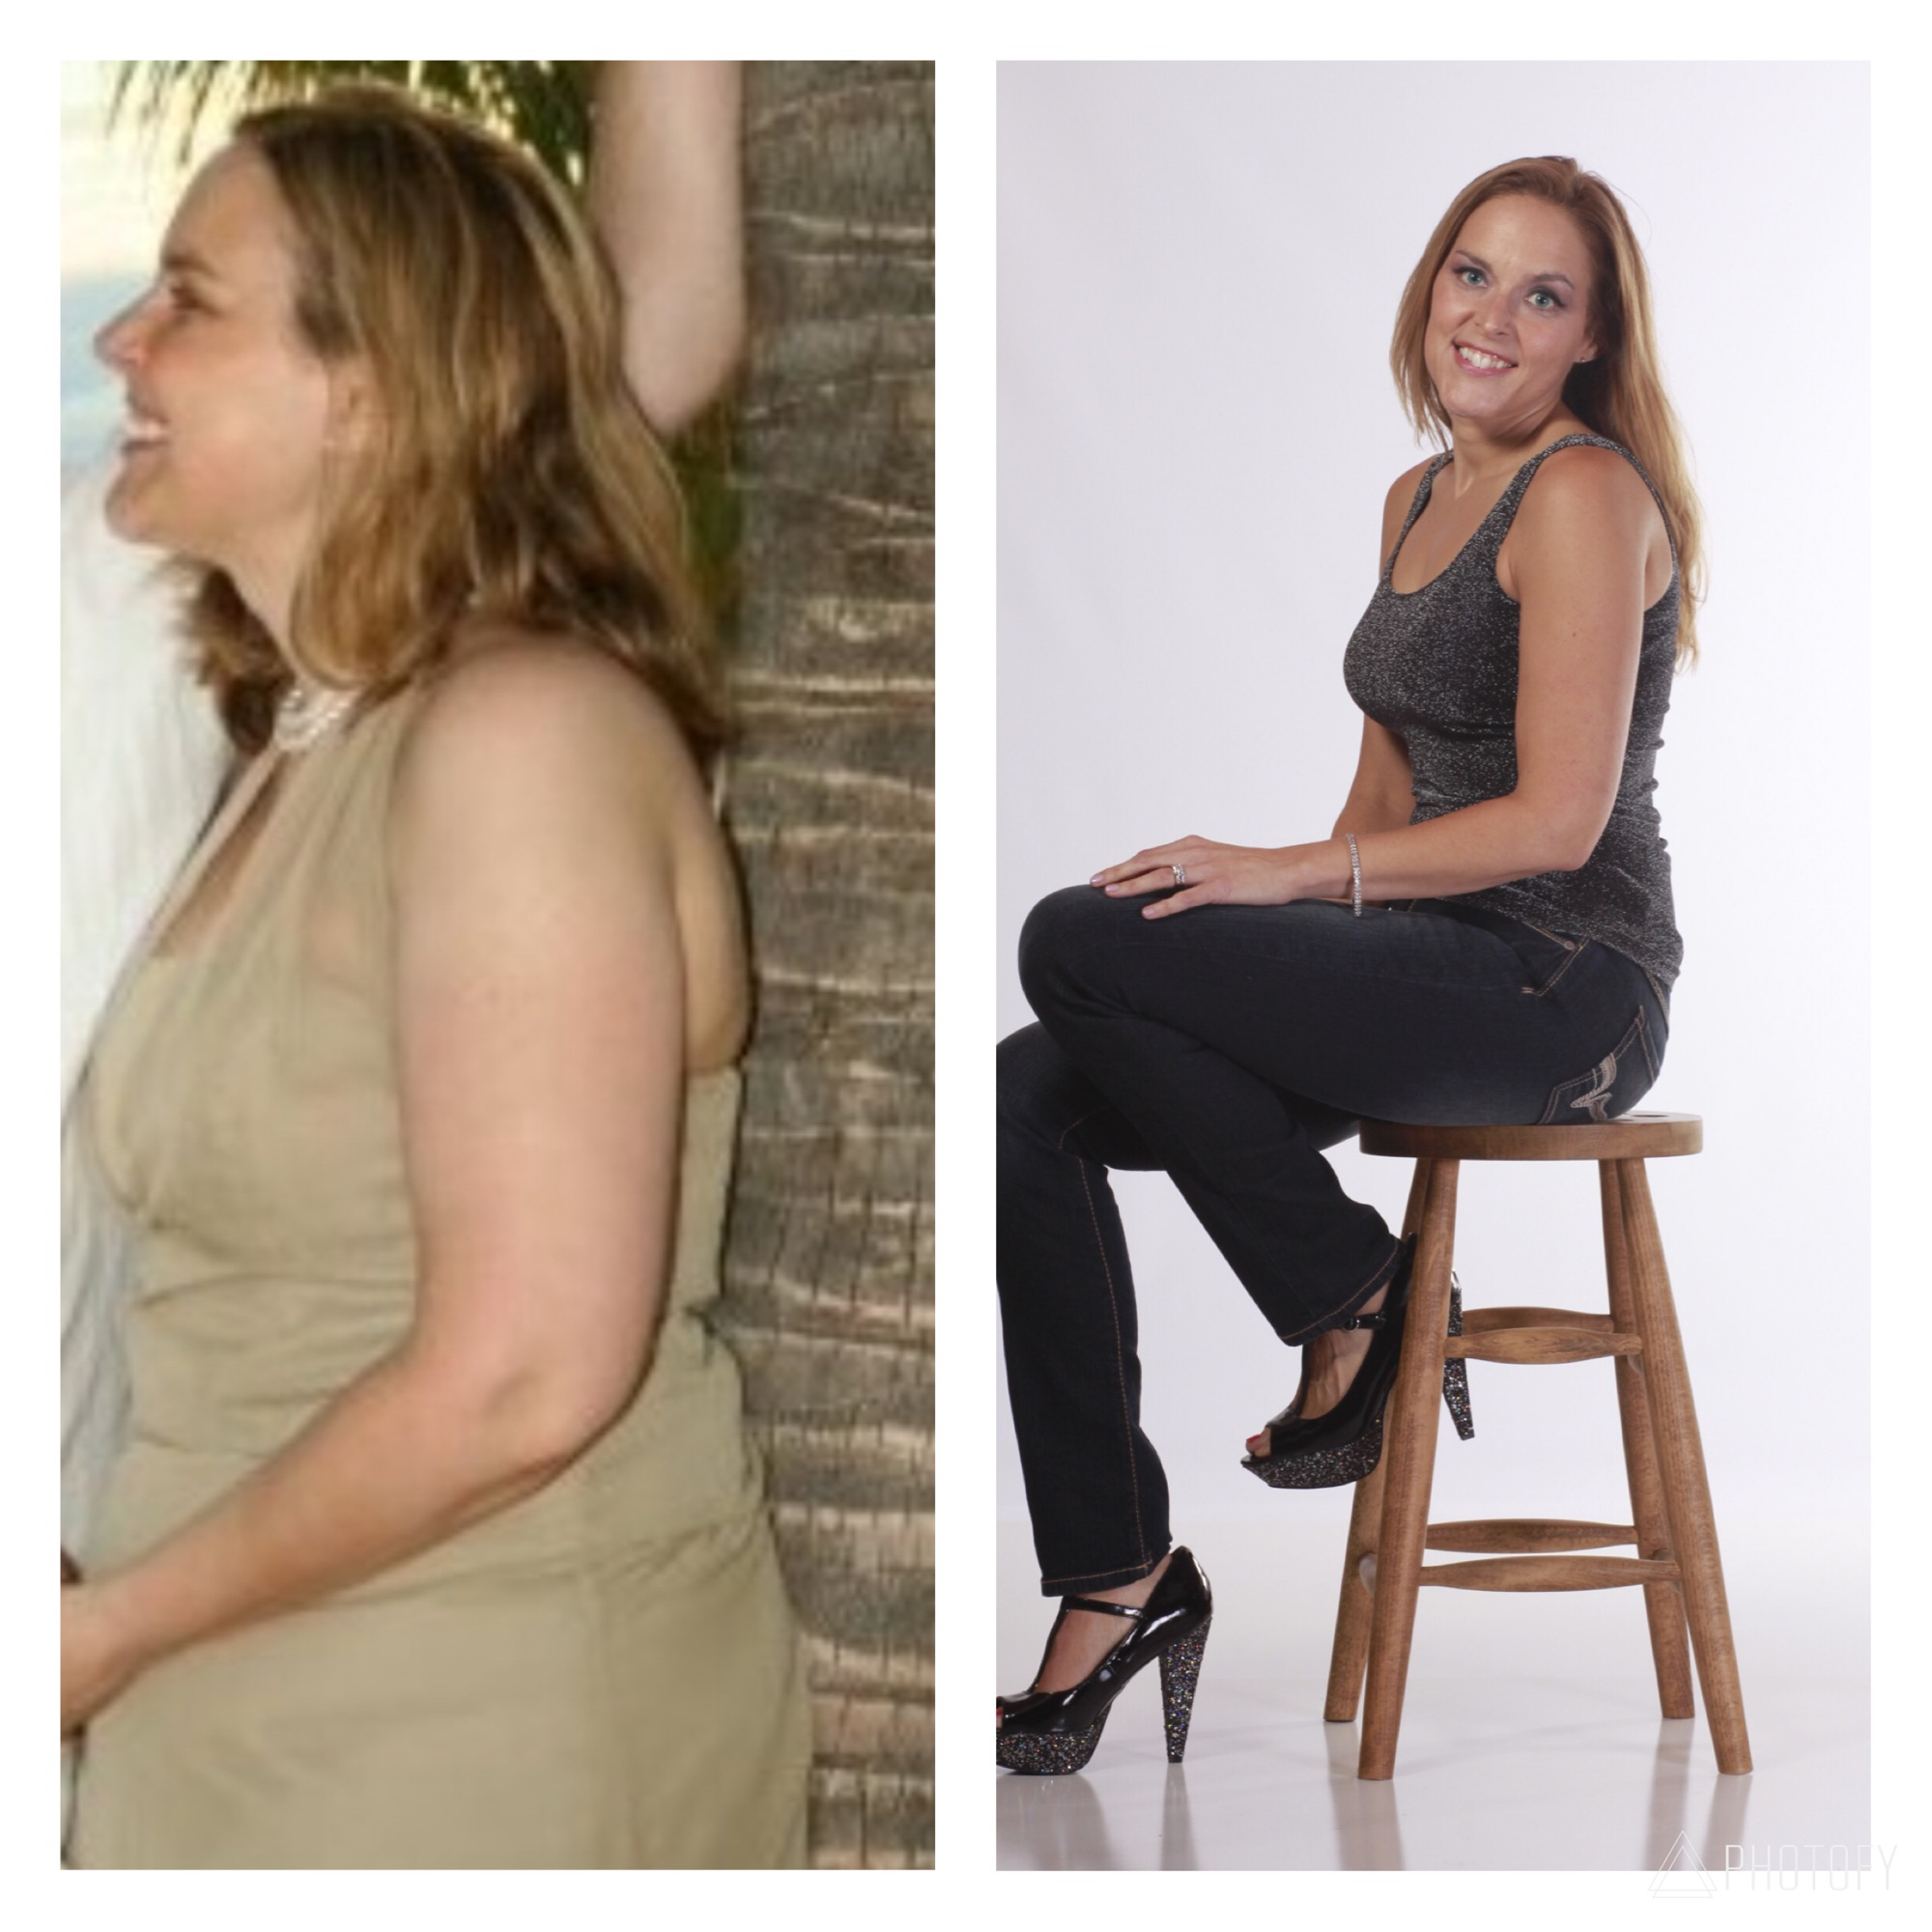 Wendy lost 85 pounds! See my before and after weight loss pictures, and read amazing weight loss success stories from real women and their best weight loss diet plans and programs. Motivation to lose weight with walking and inspiration from before and after weightloss pics and photos.